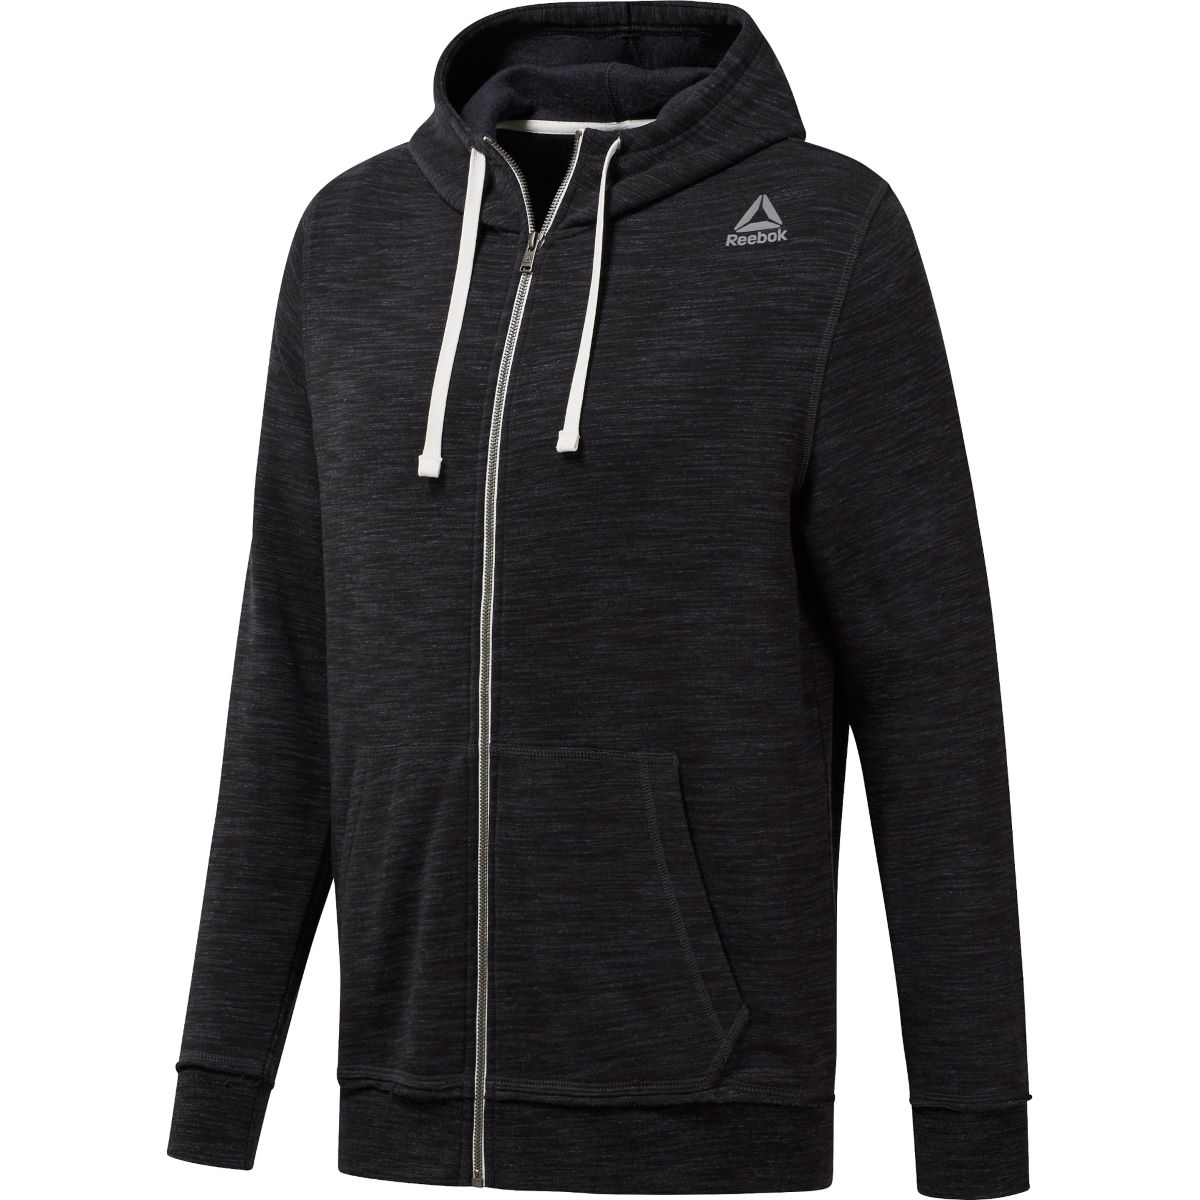 Reebok Reebok Training Essentials Group Full Zip Hoodie   Hoodies